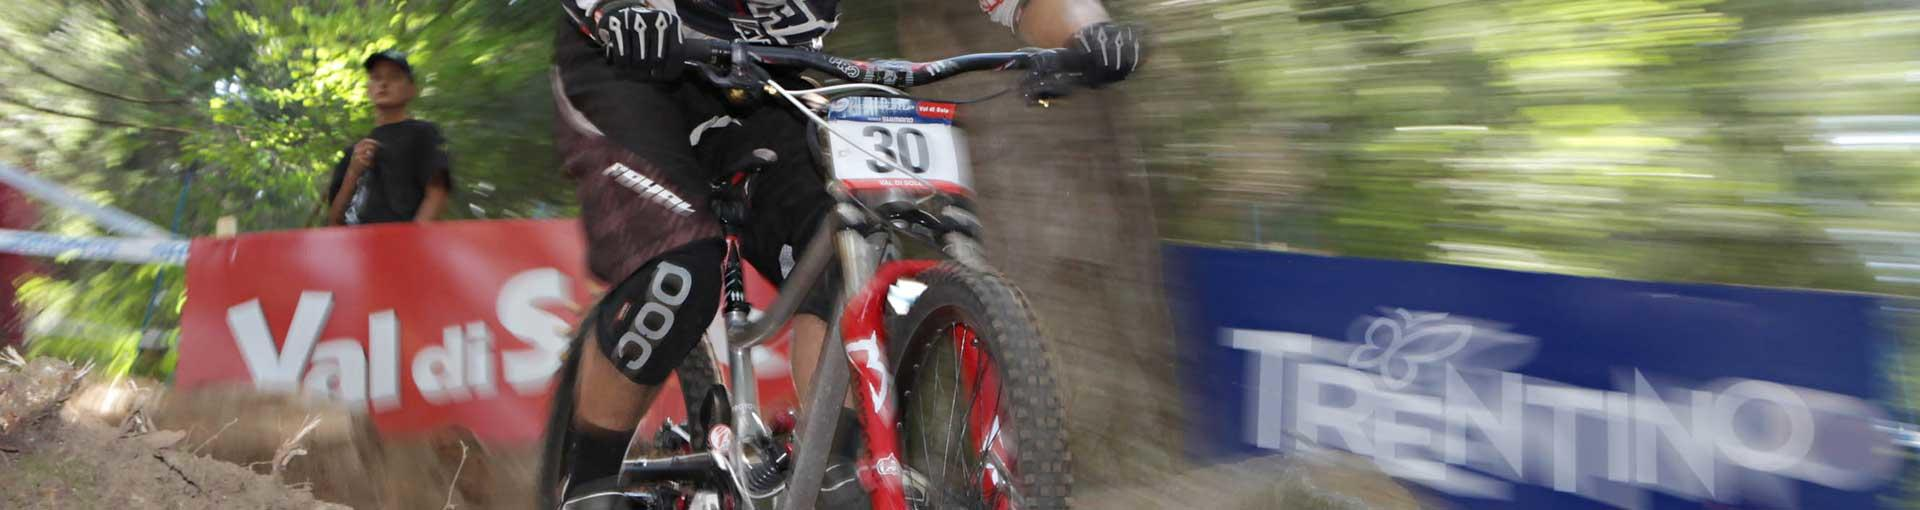 Downhill val di Sole